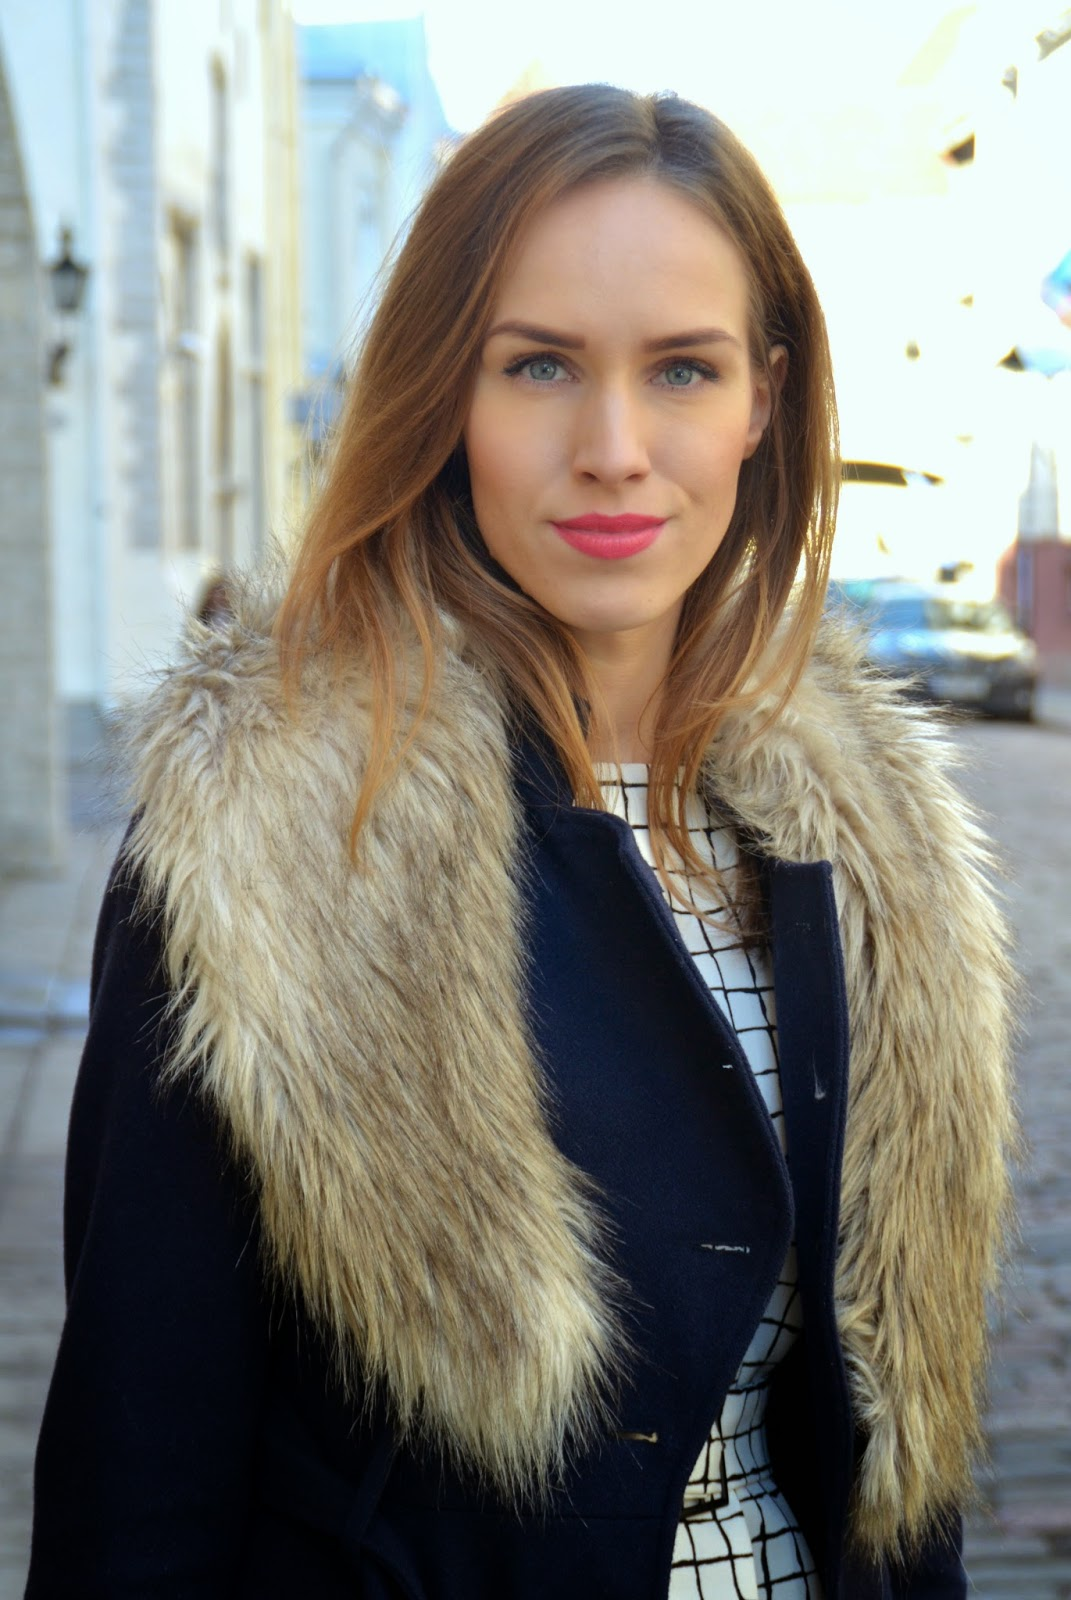 zara-top-hm-faux-fur-collar-asos-blue-wool-coat kristjaana mere